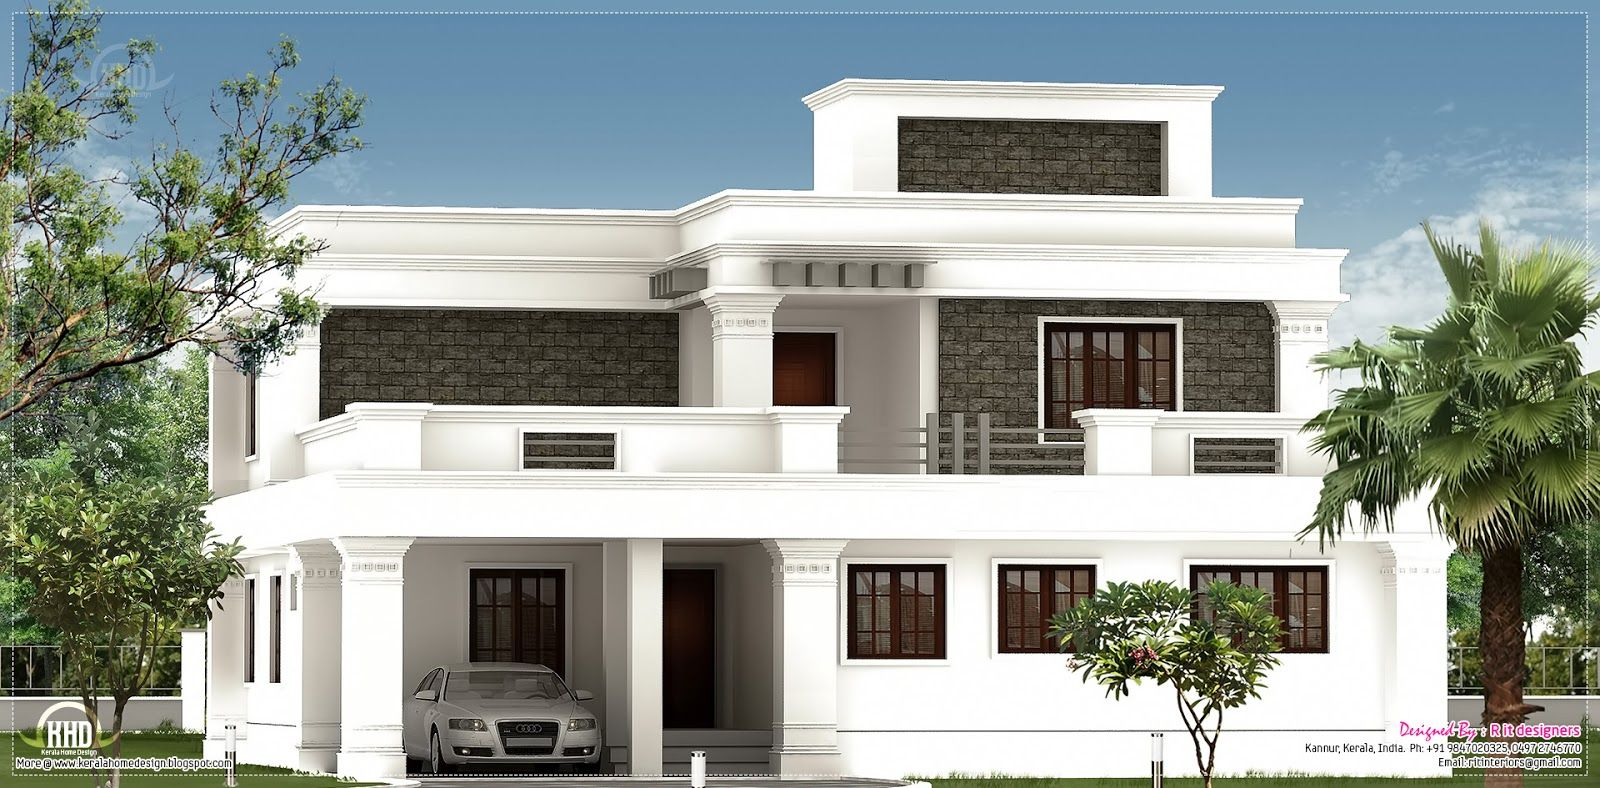 Flat roof homes designs flat roof villa exterior in 2400 for House exterior design pictures in indian